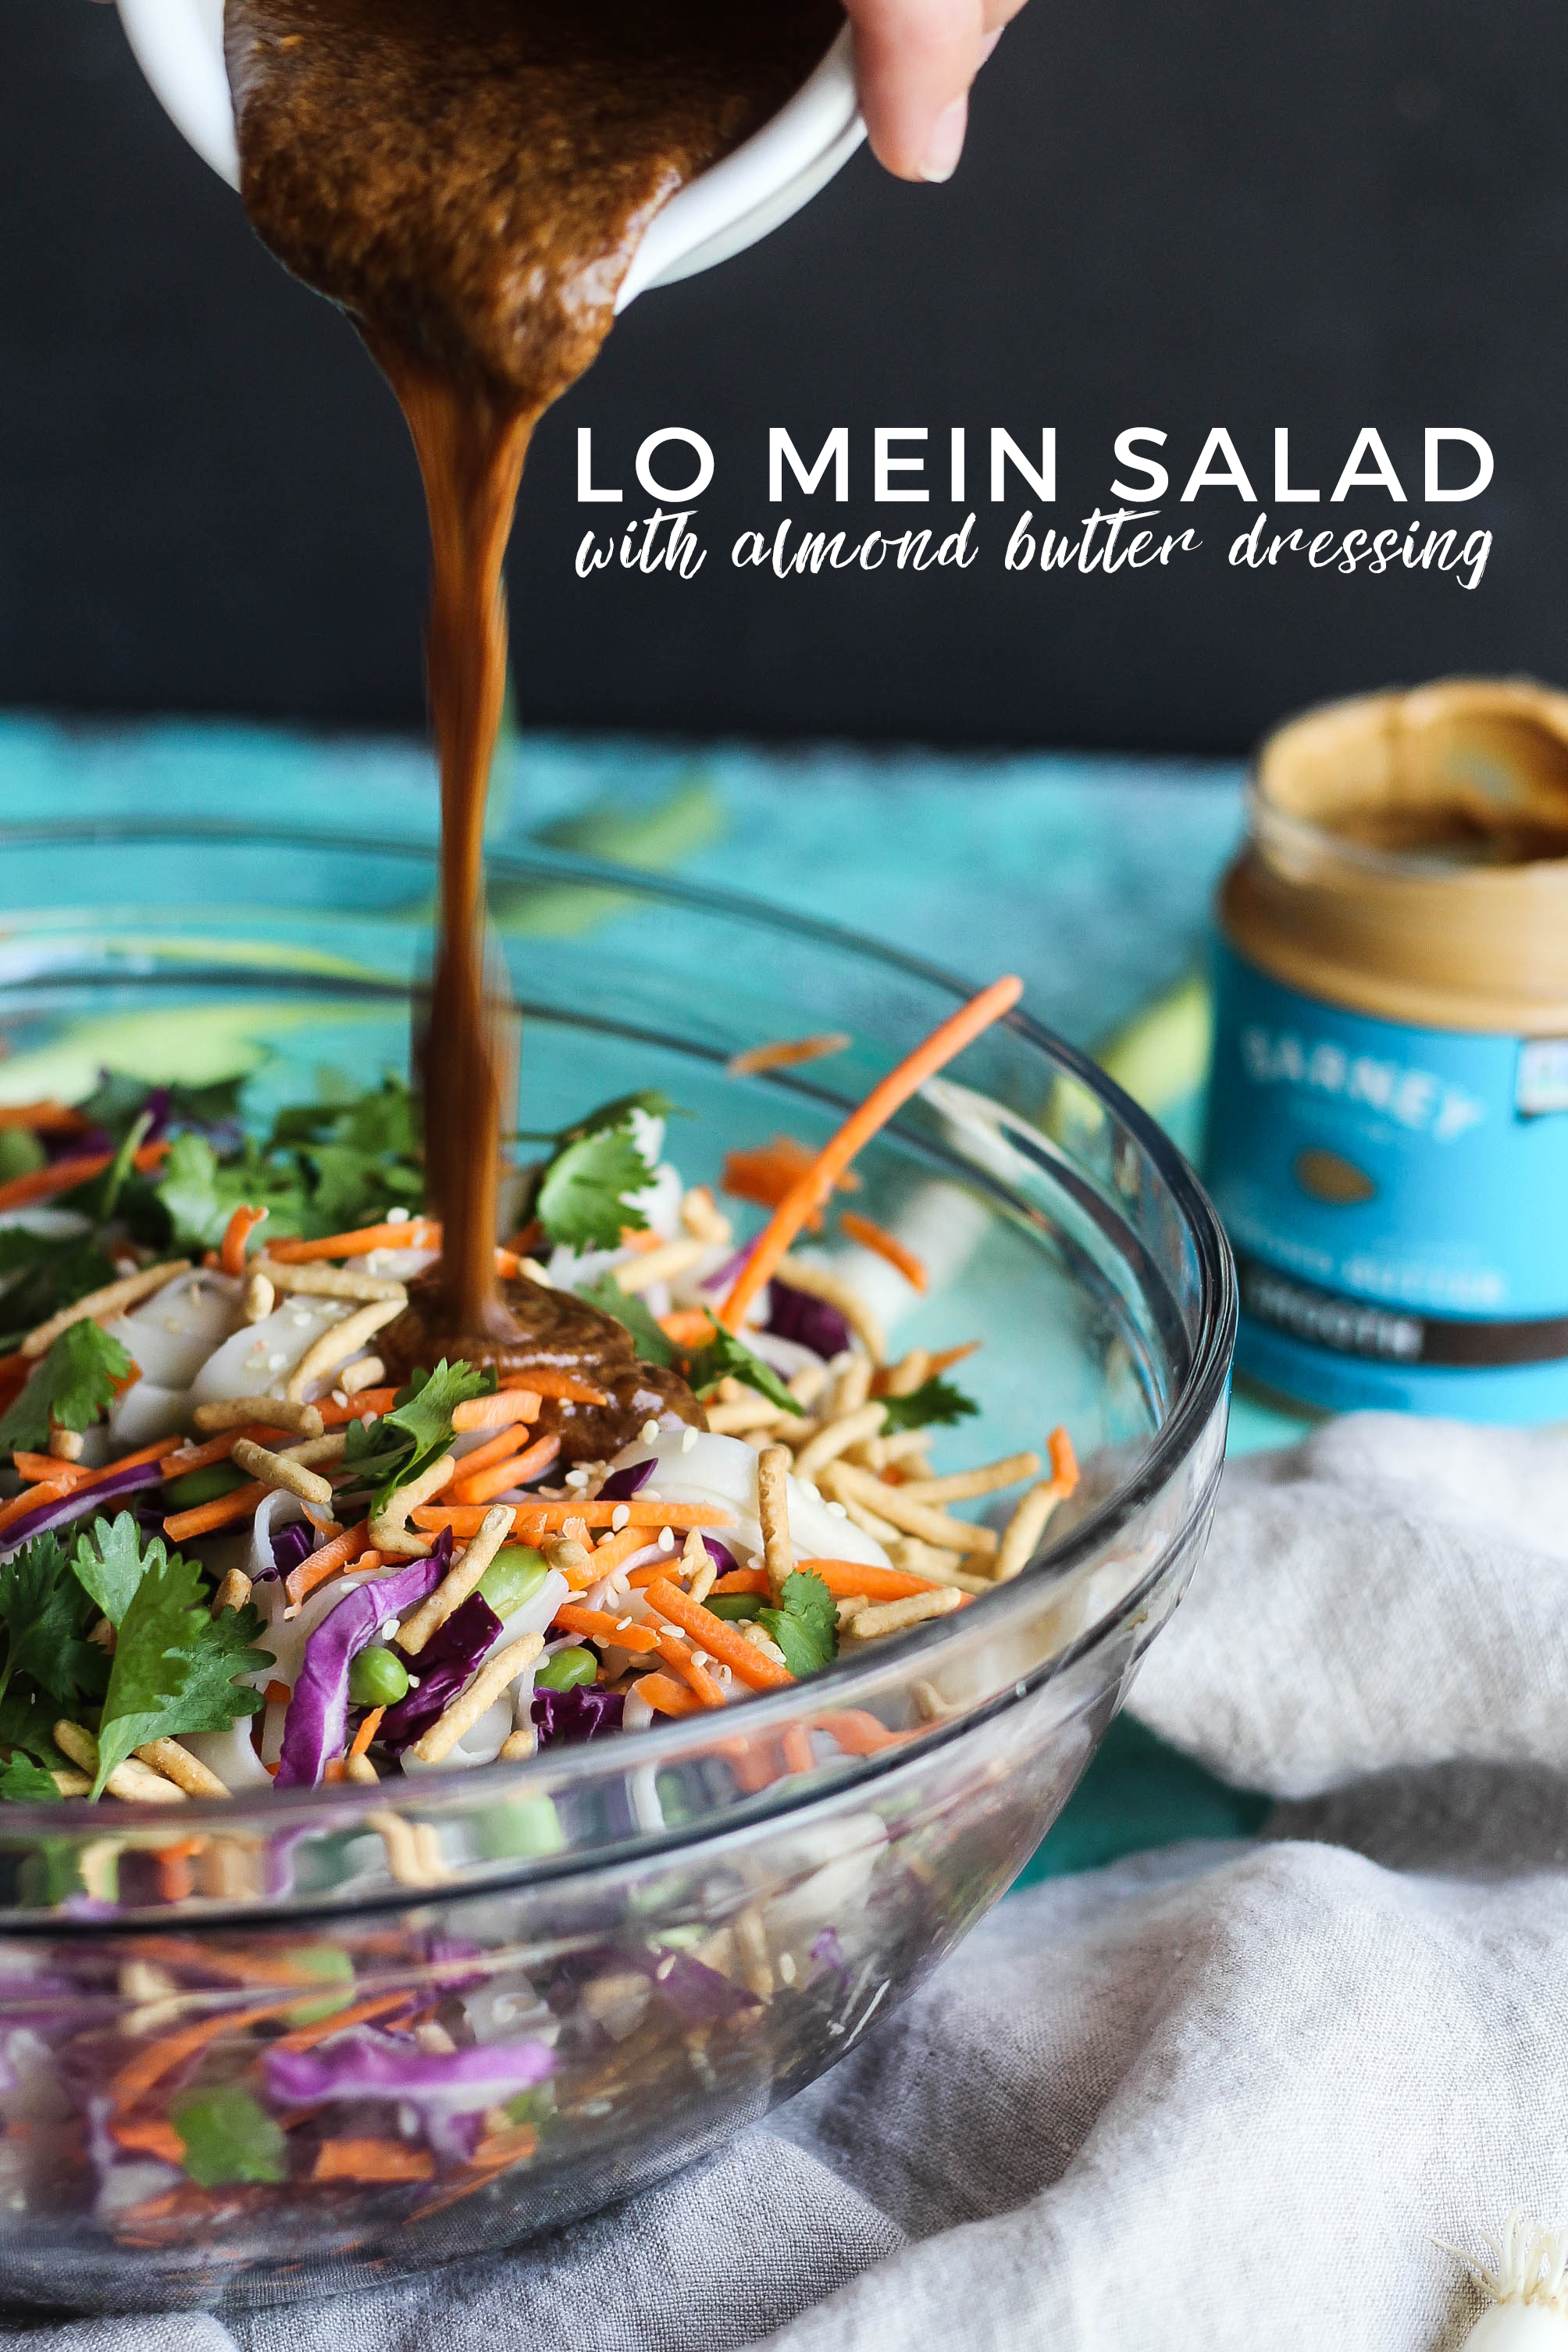 Lo Mein Salad with Almond Butter Dressing